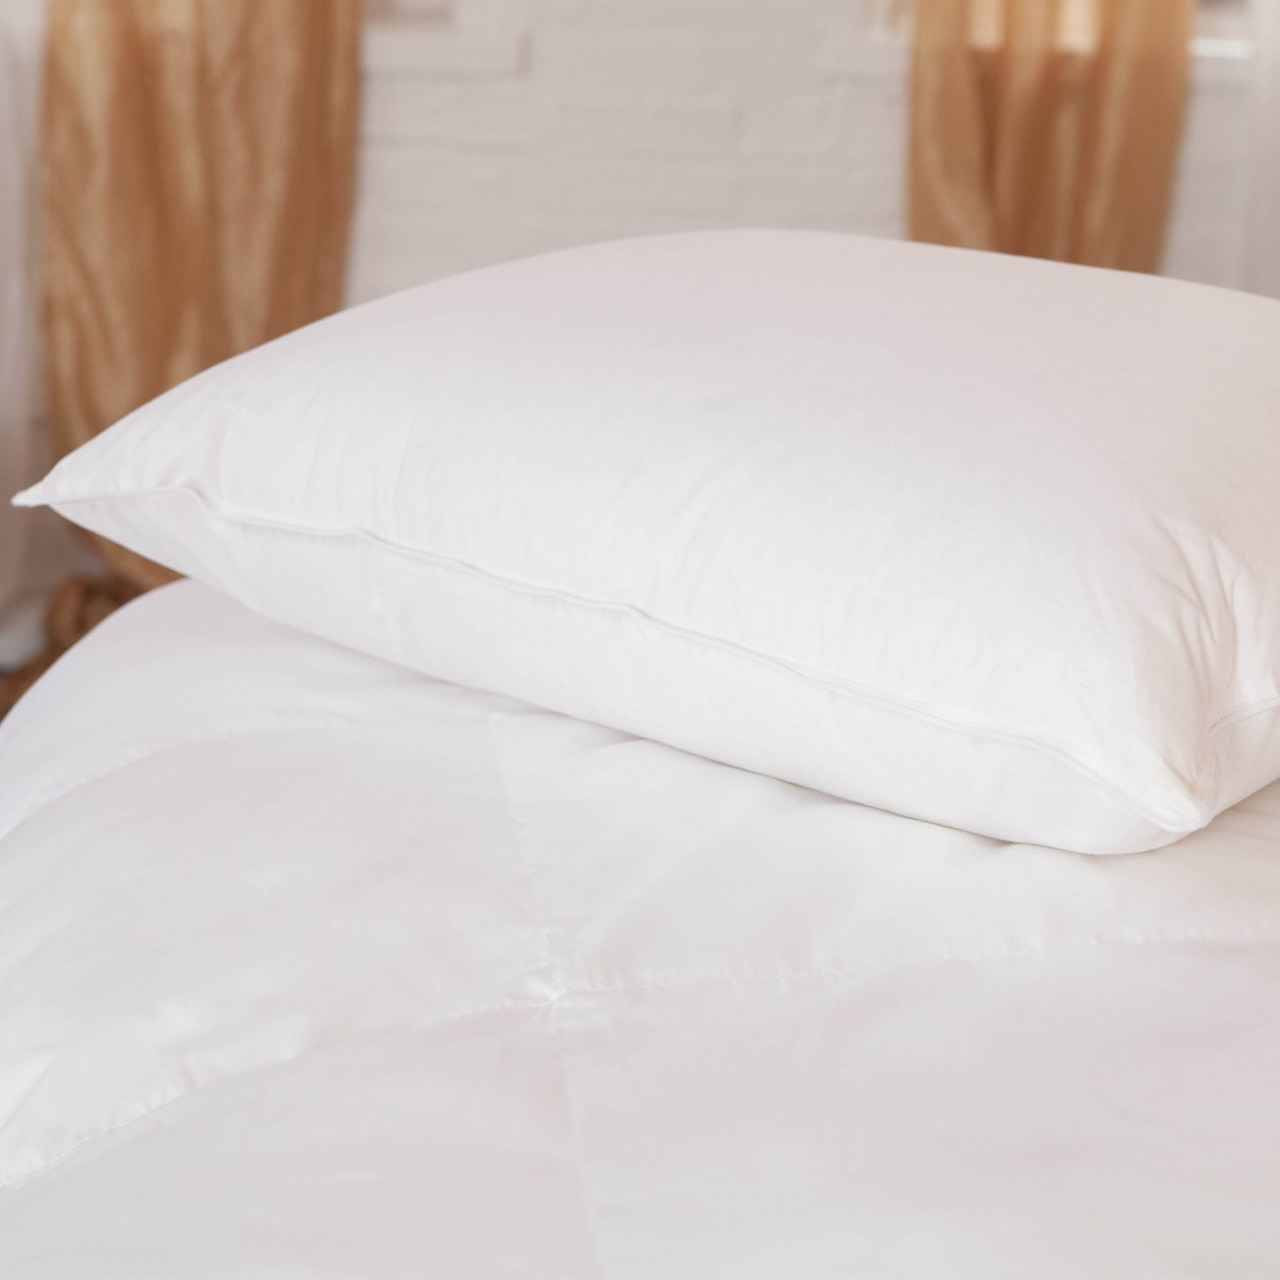 DownLite Bedding Downlite Pillow or MicroLoft Gel Fiber